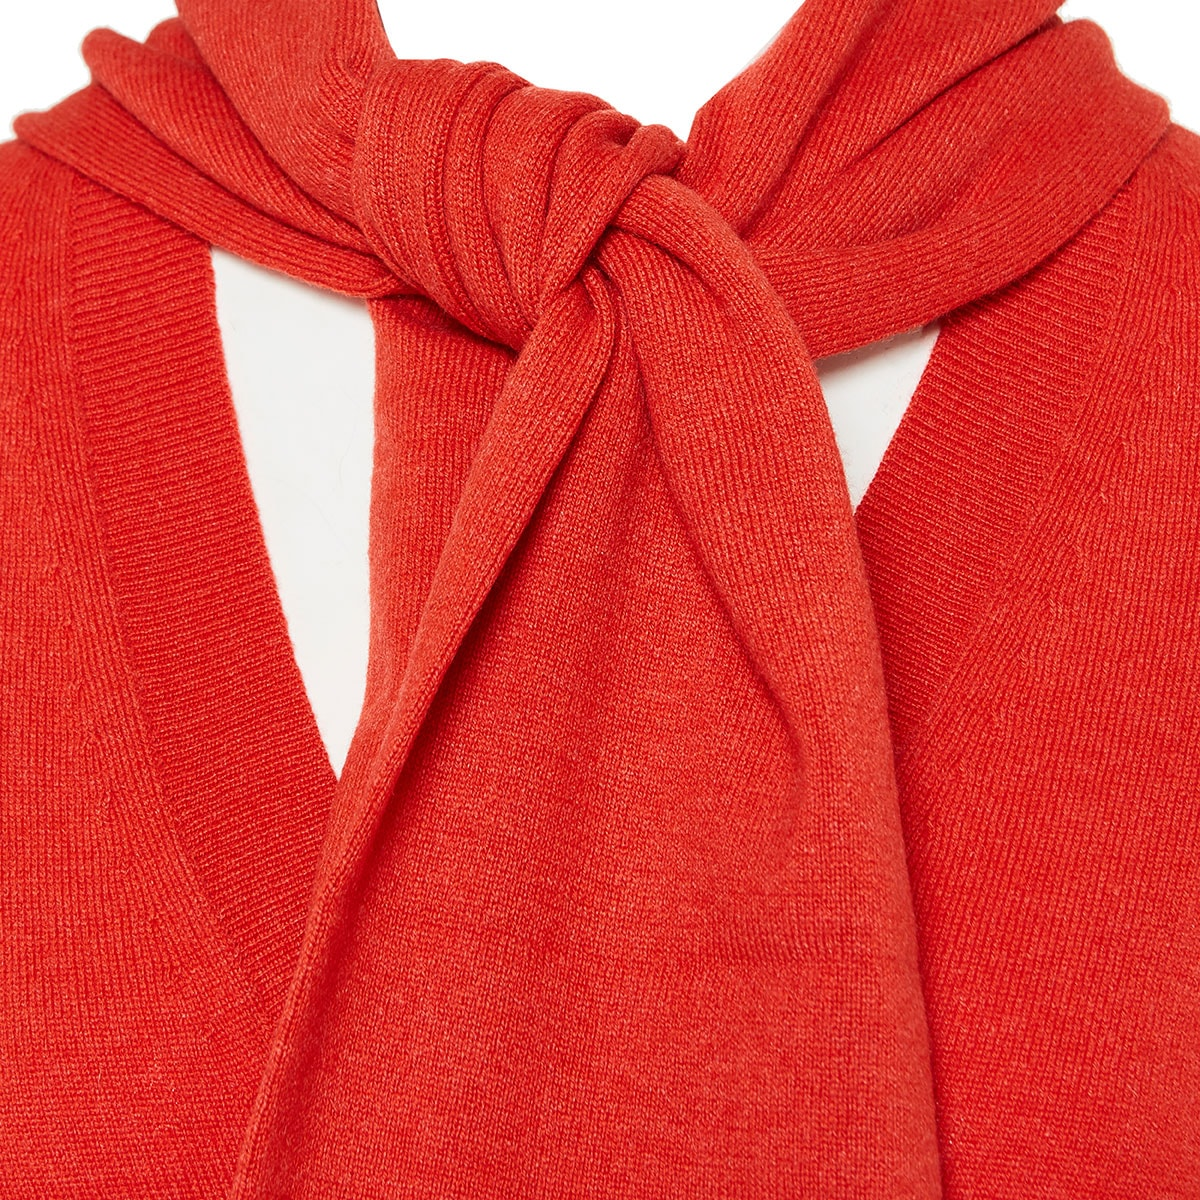 Cashmere sweater with ties